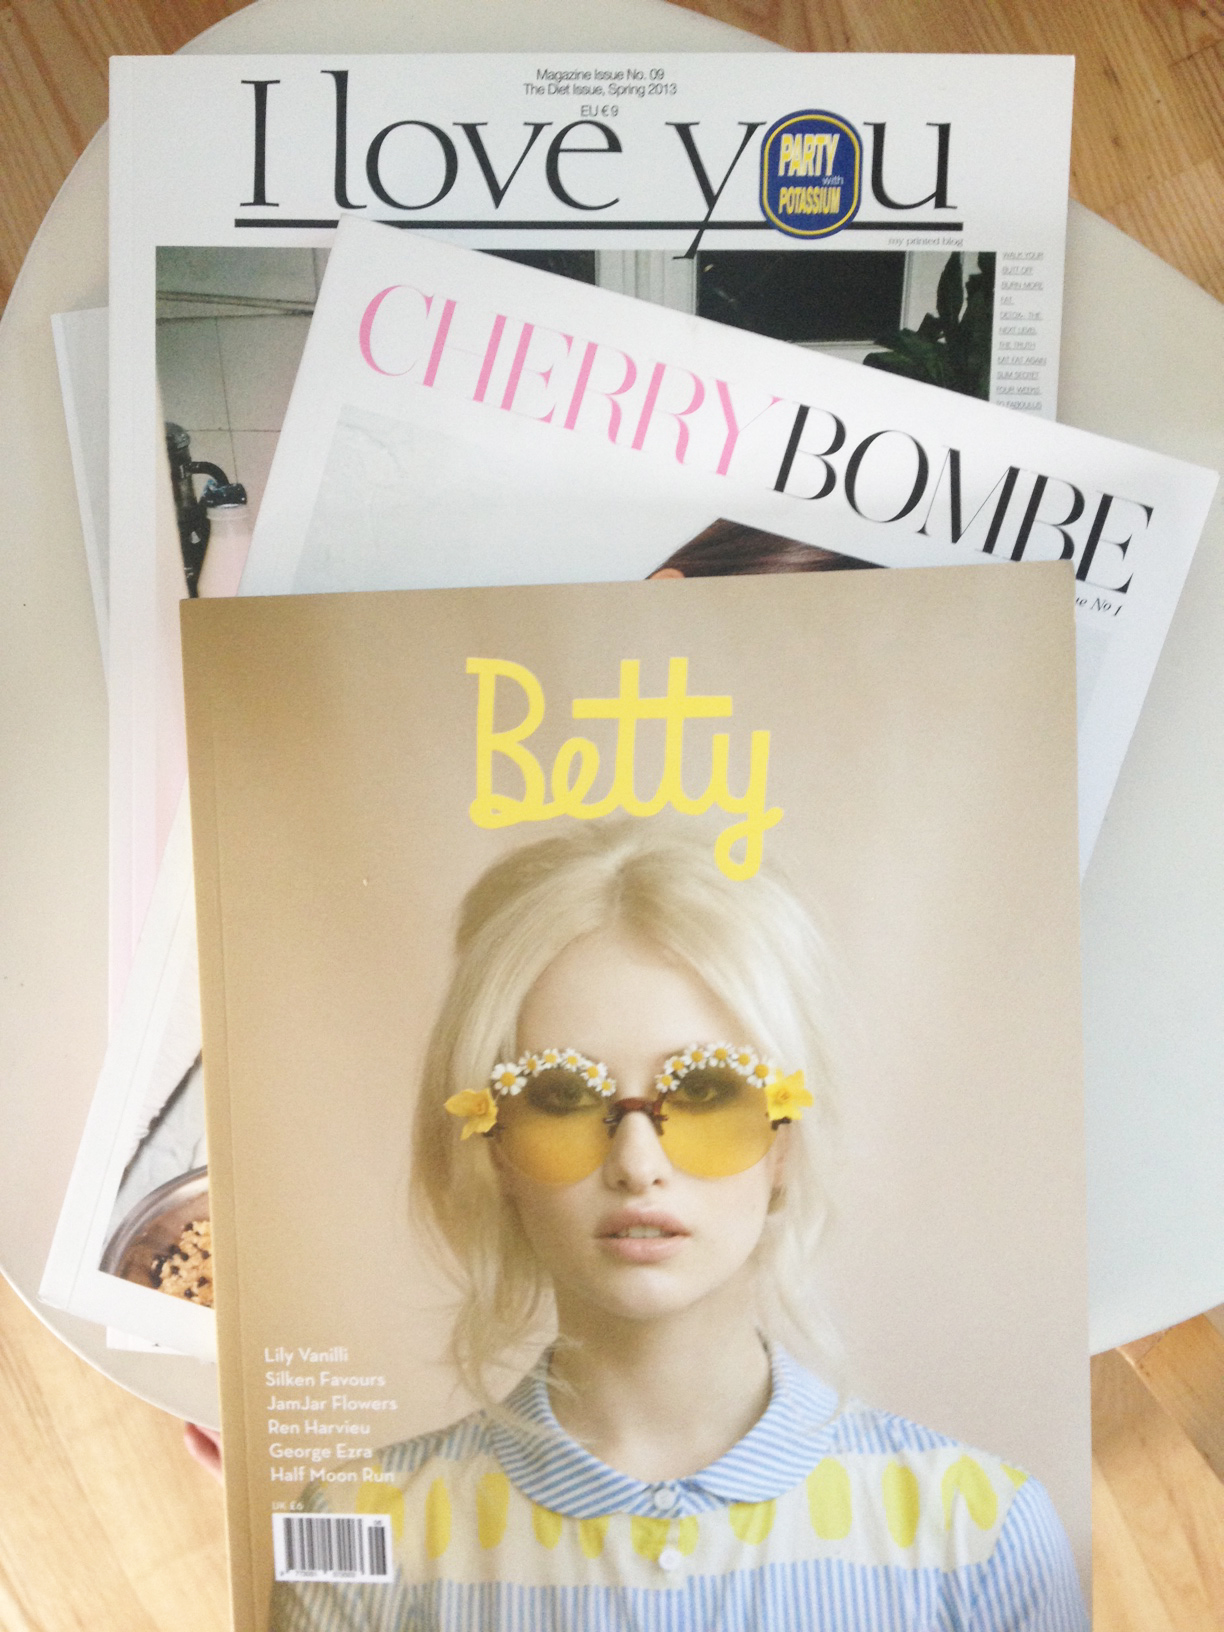 Cherry Bombe, I Love You, Betty / Second Floor Flat